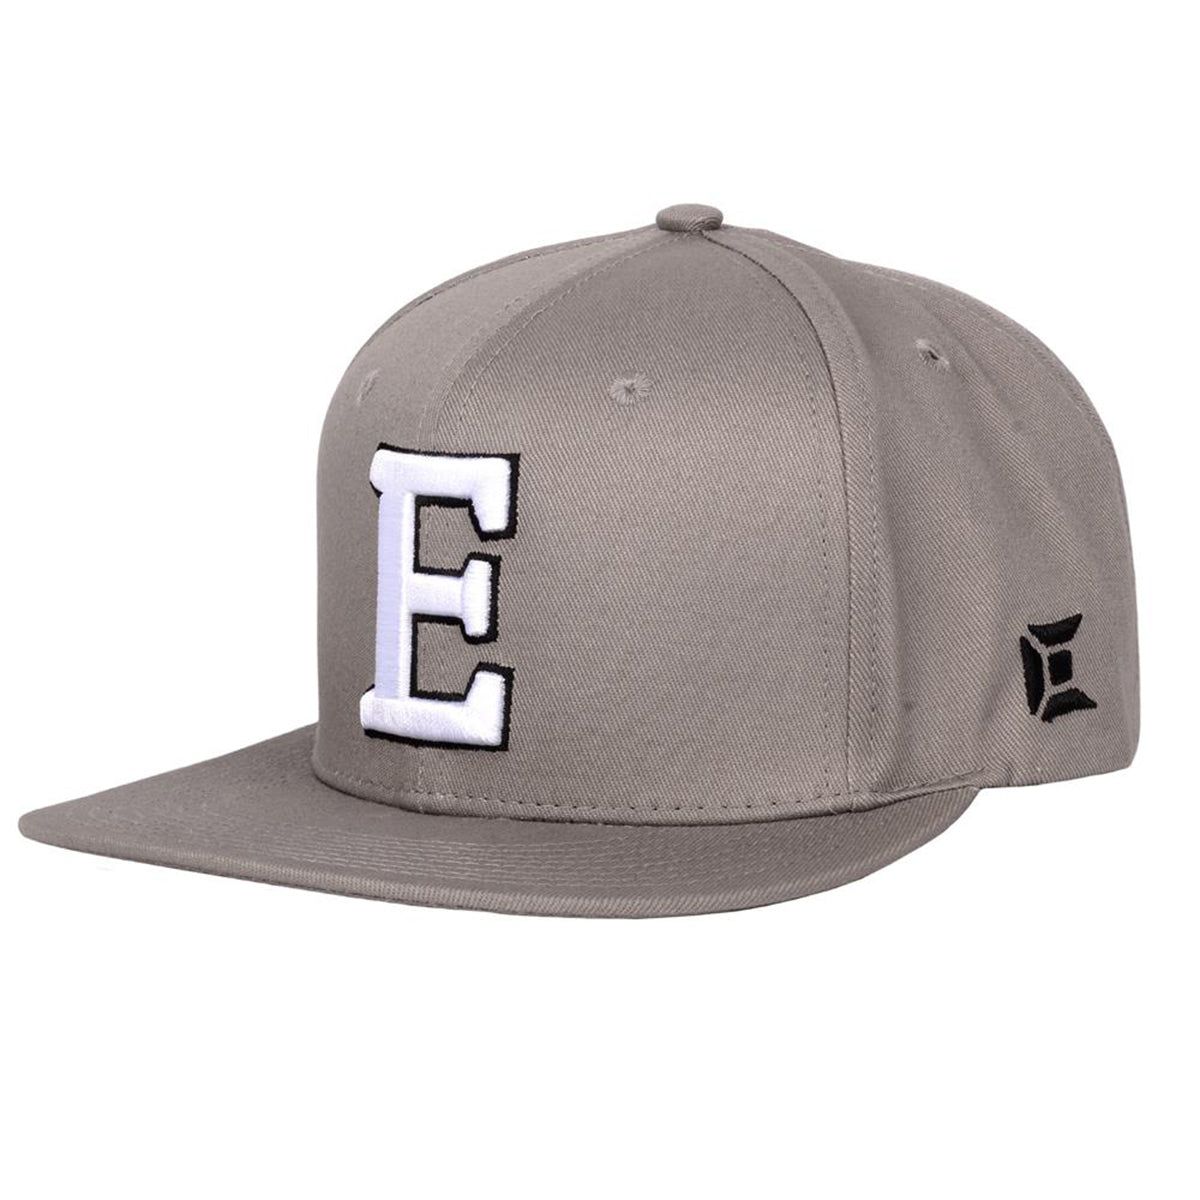 Photos of Exalt Flexsize Hat Grey - S/M. Photo taken by drpaintball.com